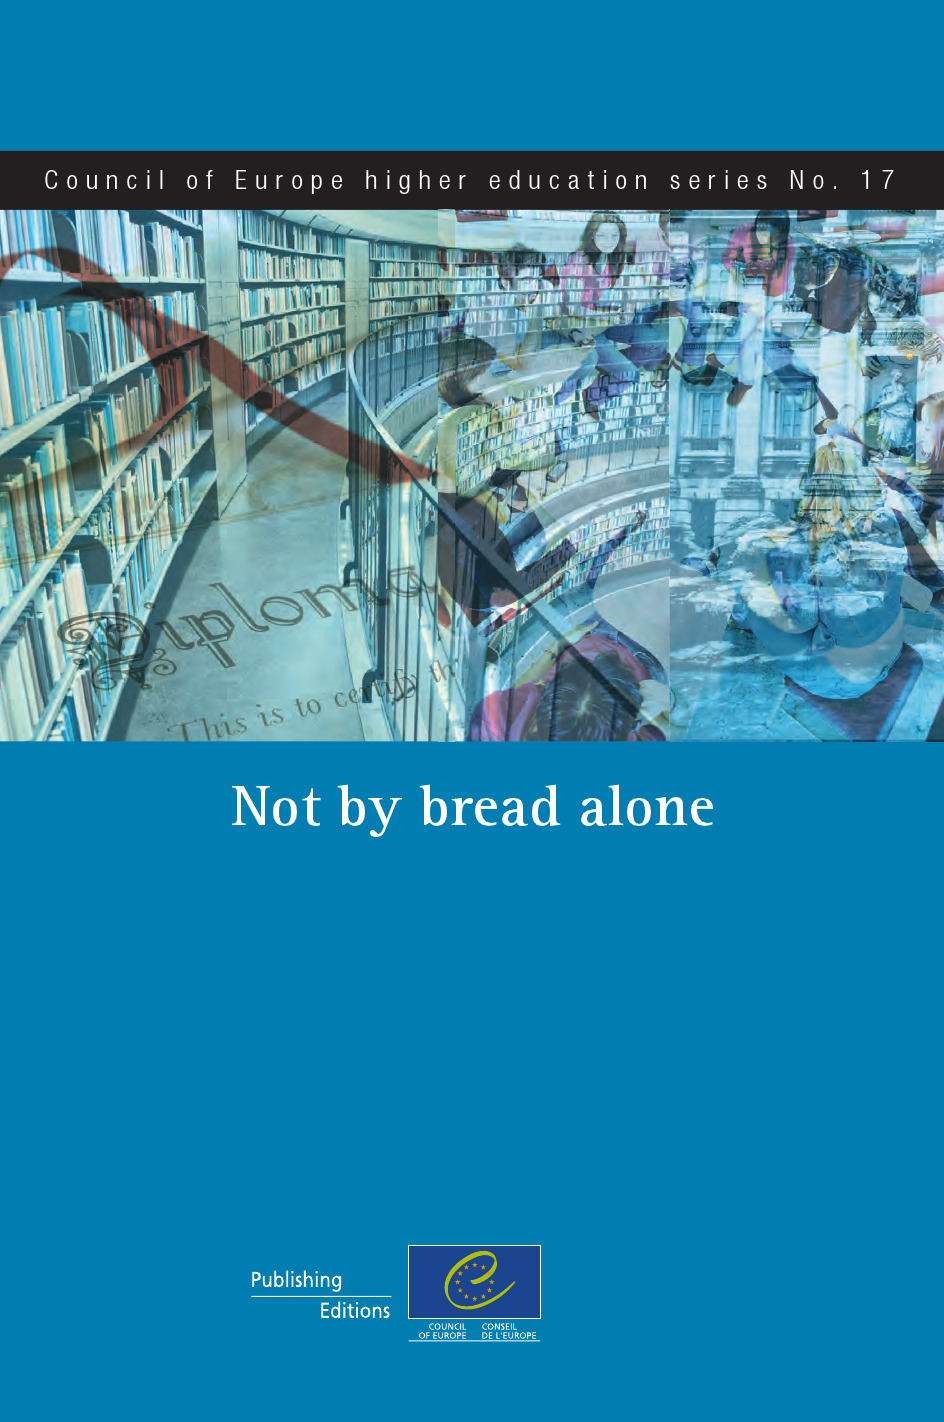 Not by bread alone (Council of Europe higher education series No.17)